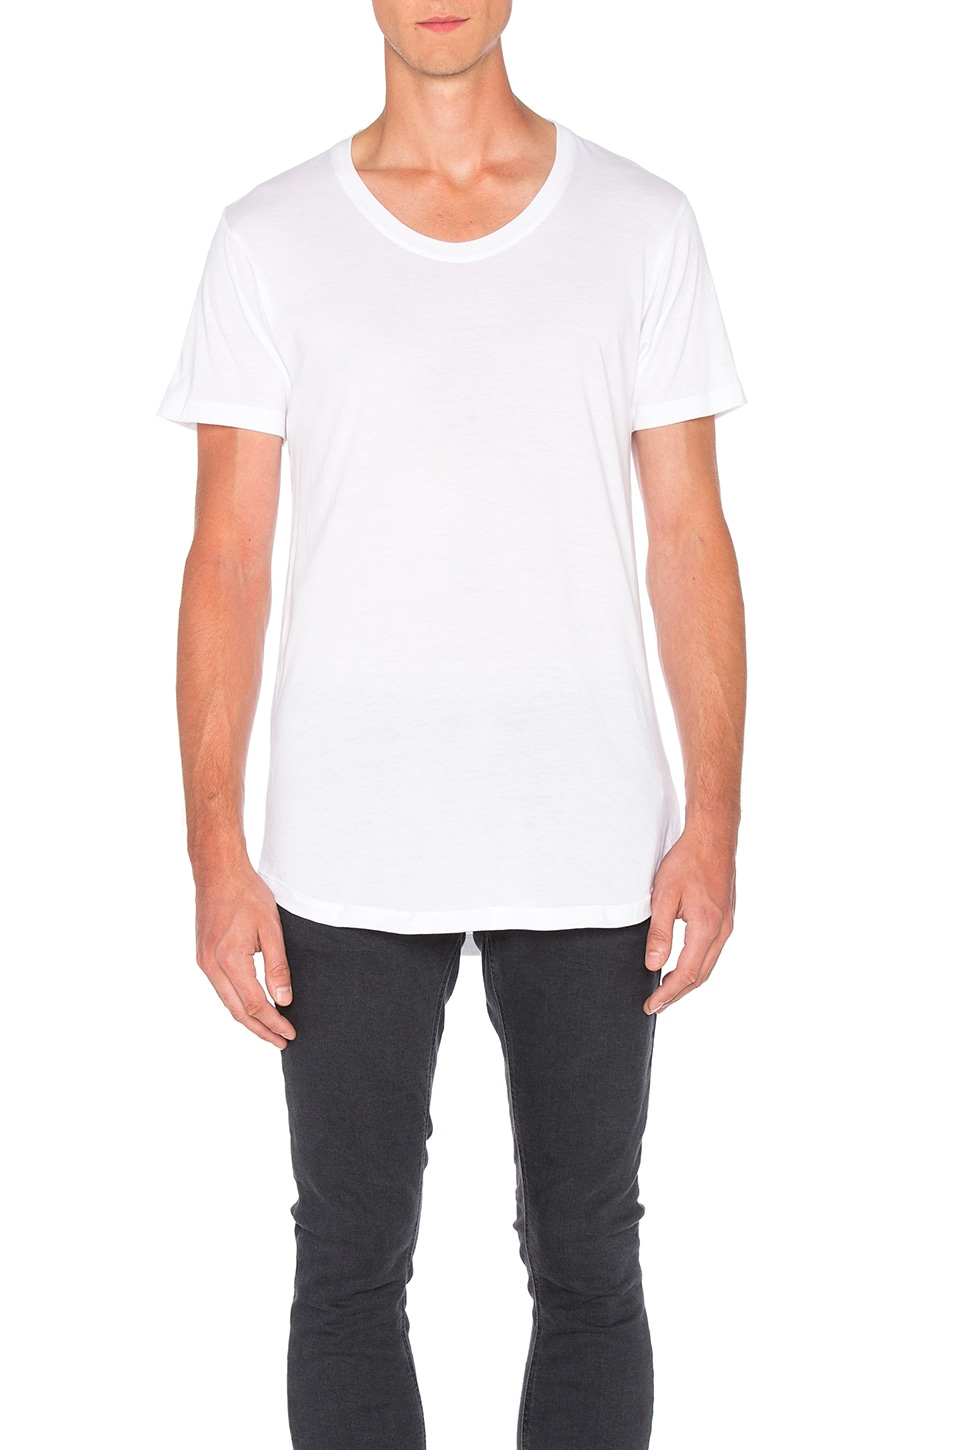 JOHN ELLIOTT Curve U-Neck in White